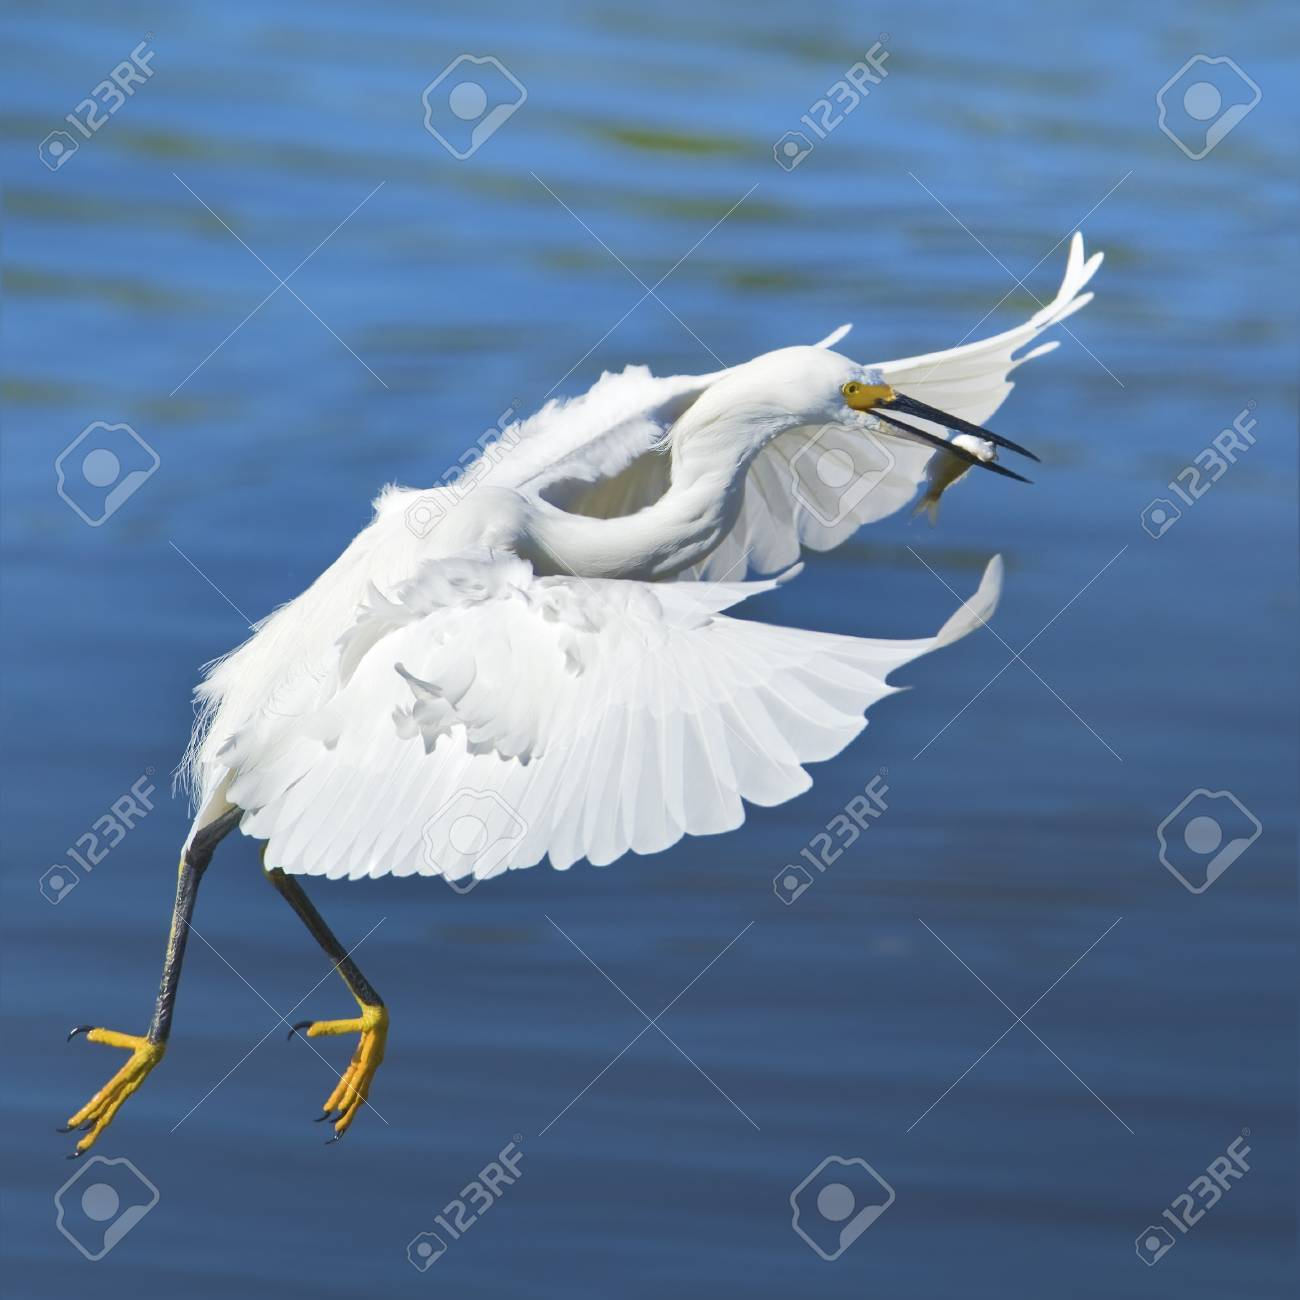 Flying Snowy Egret with catch.Latin name - Egreta tula. Stock Photo - 11714861